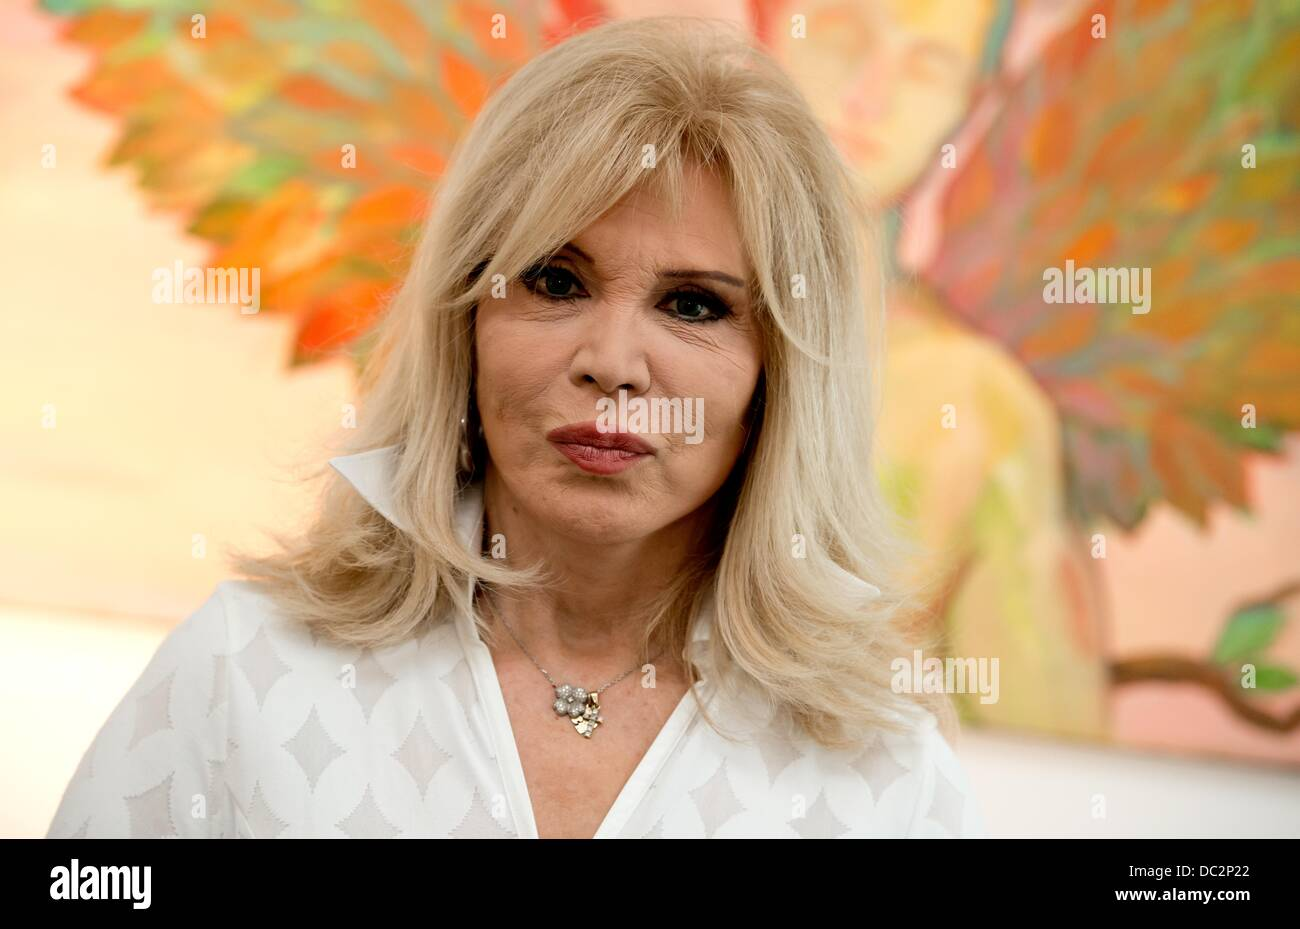 Amanda Lear Painting High Resolution Stock Photography And Images Alamy